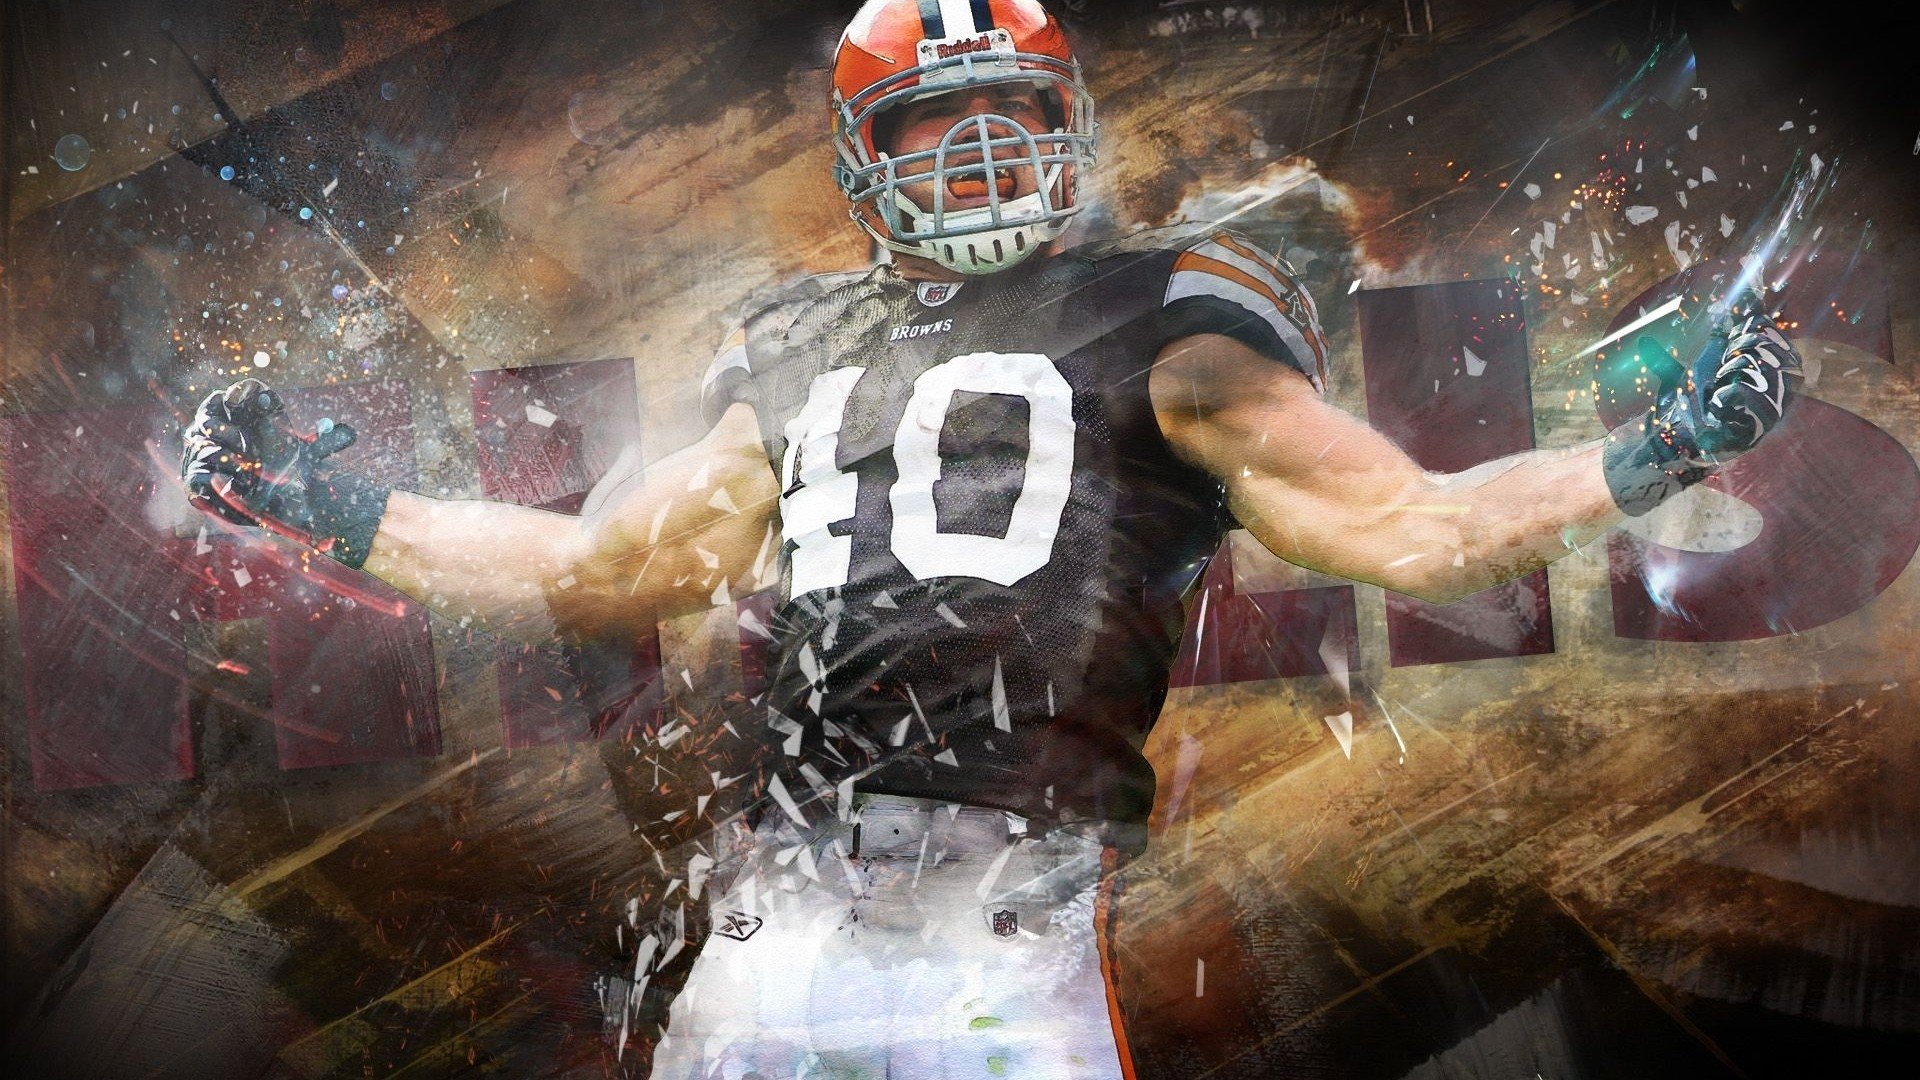 Cleveland Browns Wallpaper image hd